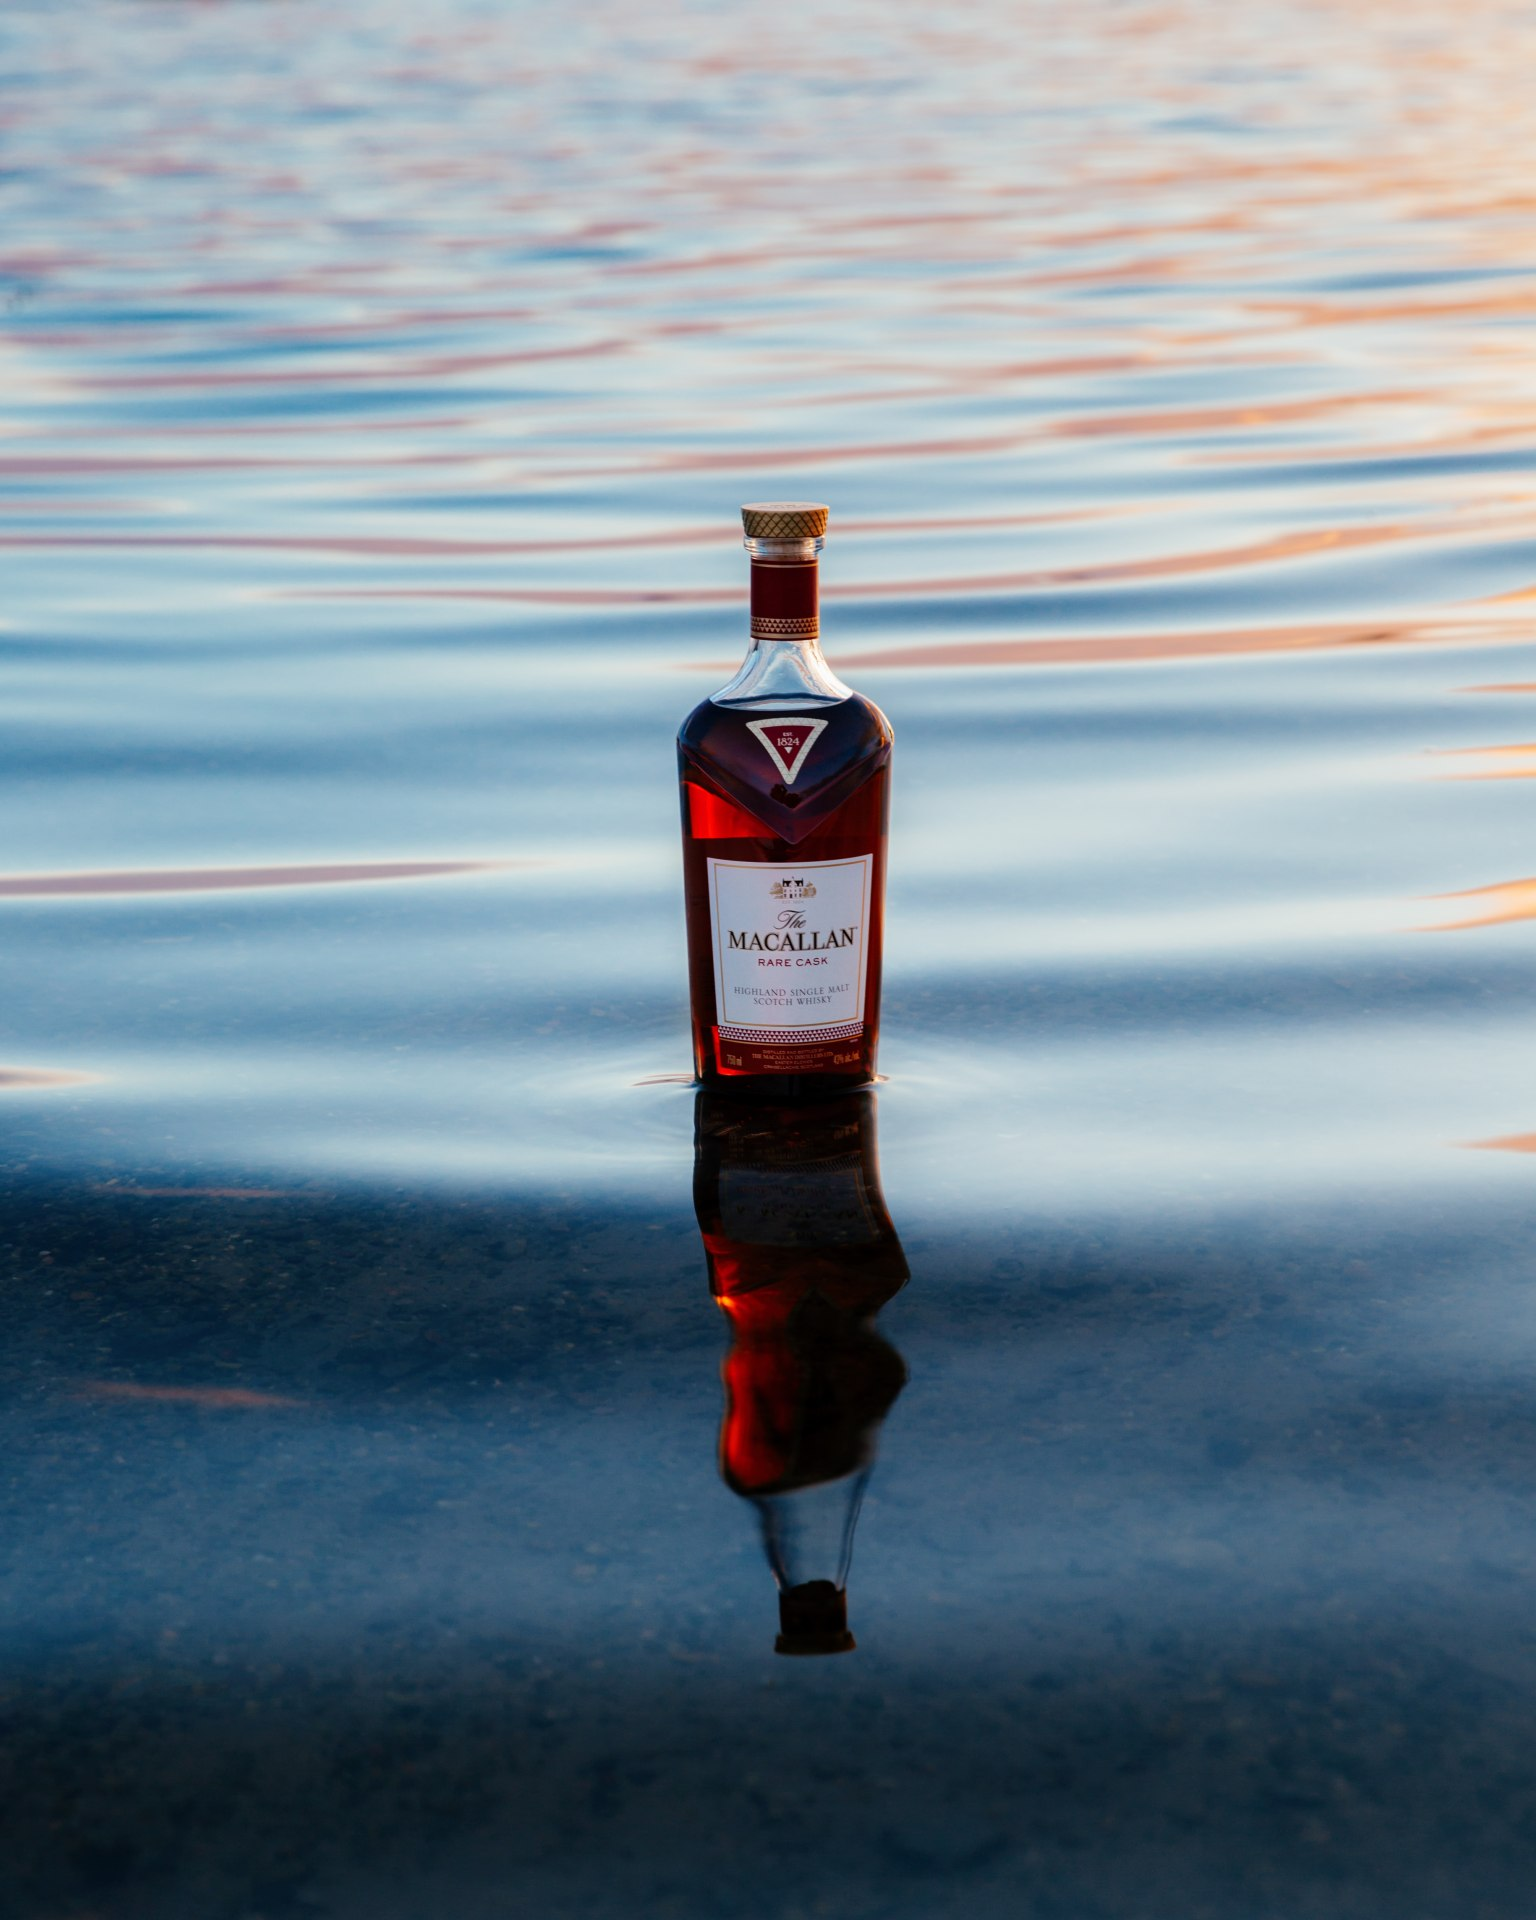 The Macallan: Social Media Campaign